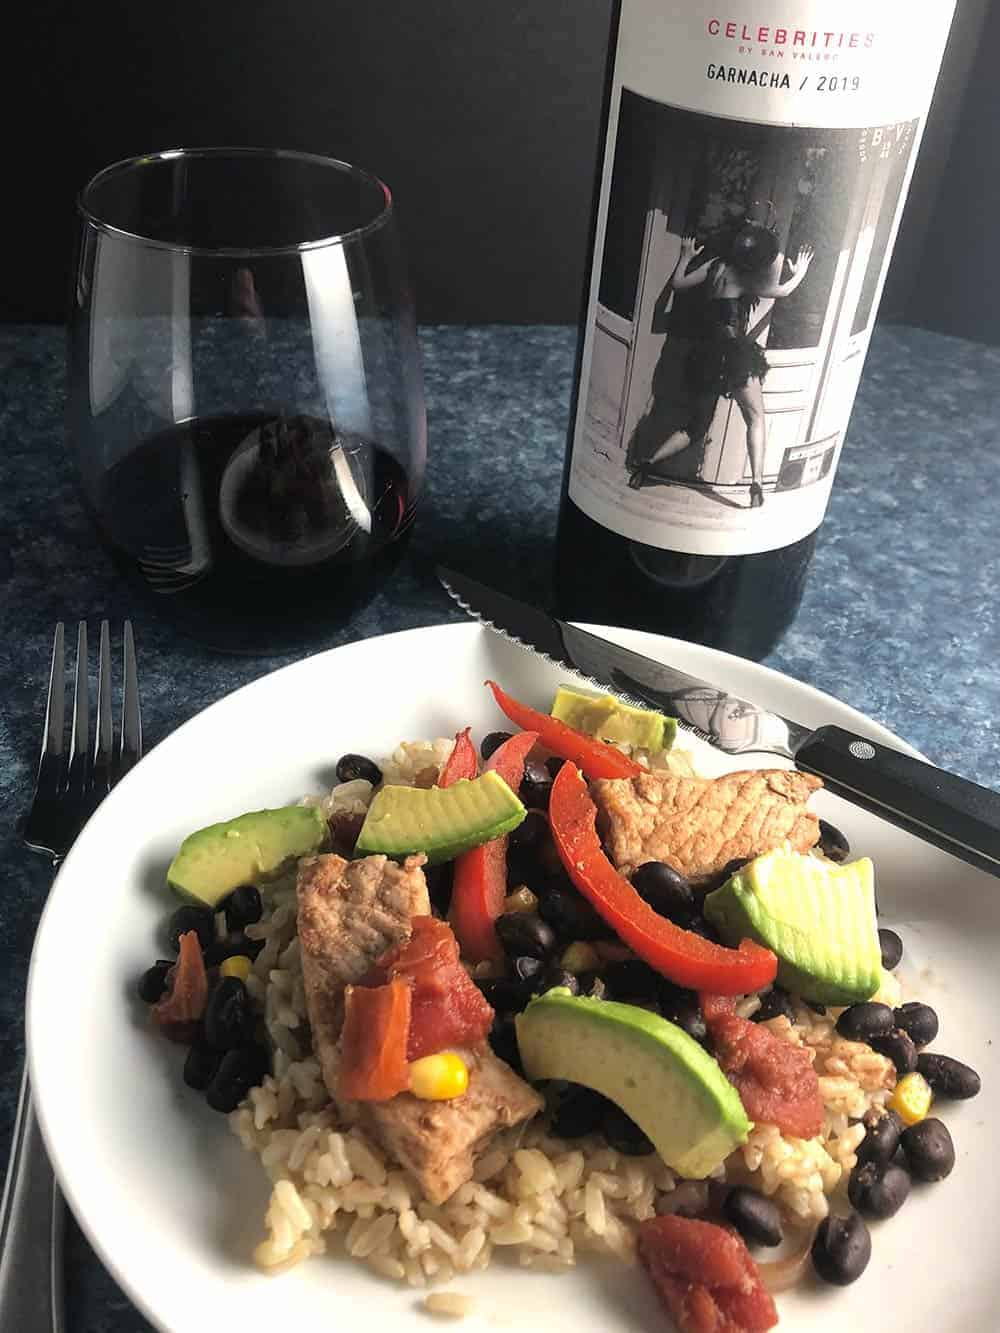 pork and black beans served with red wine.